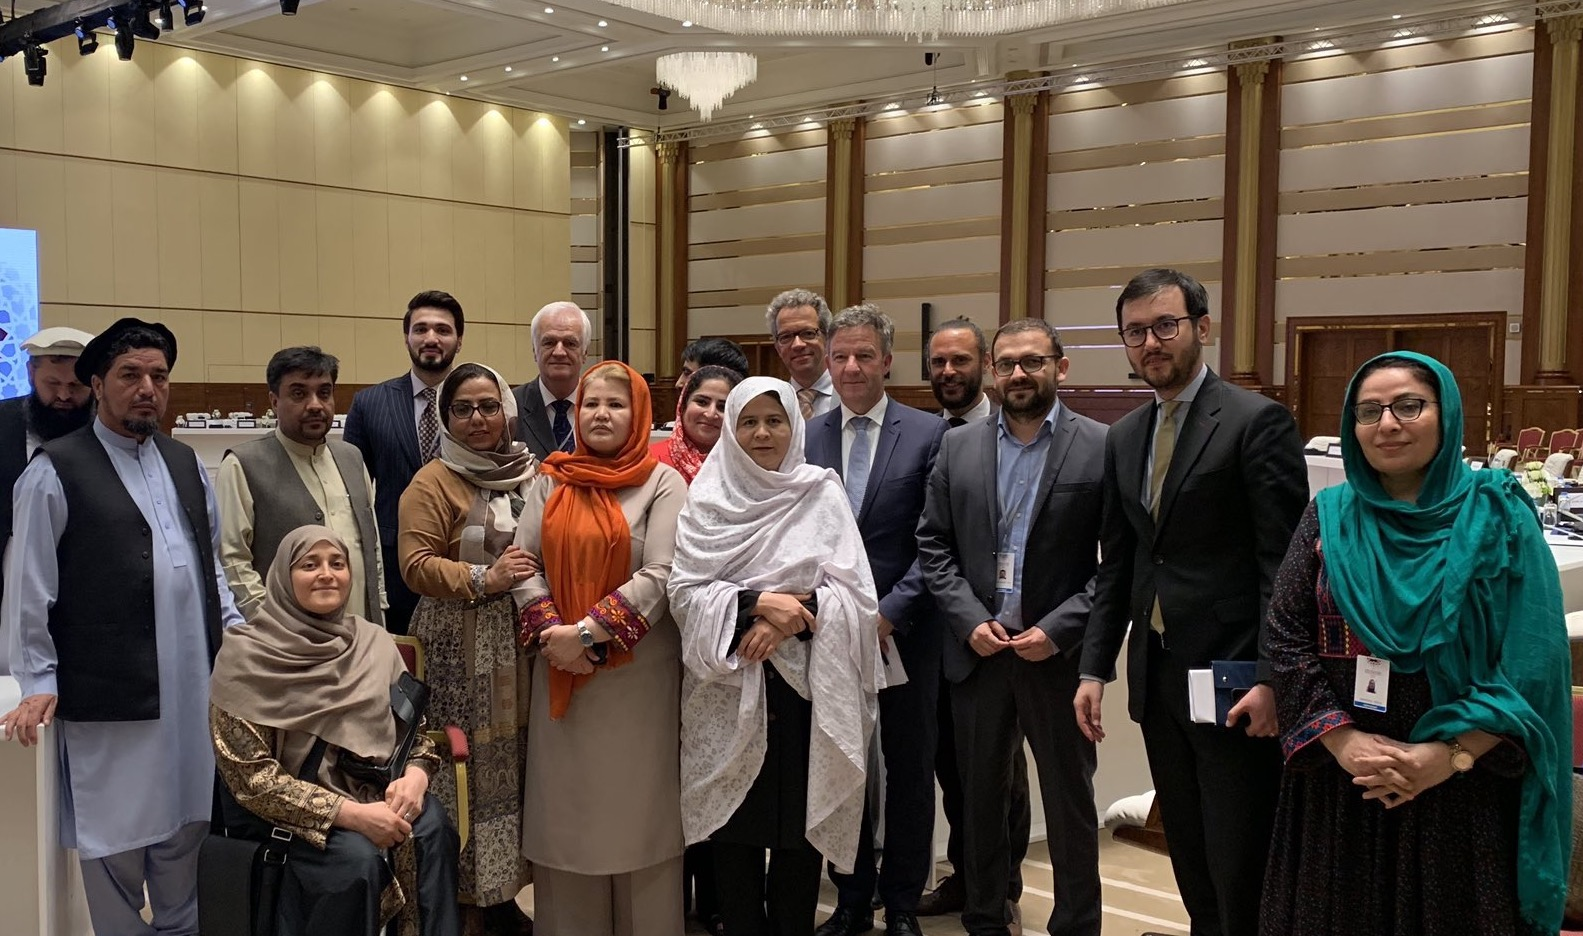 IMG 8220 1 - Hopes For Cease-fire After The Doha Intra-Afghan Dialogue